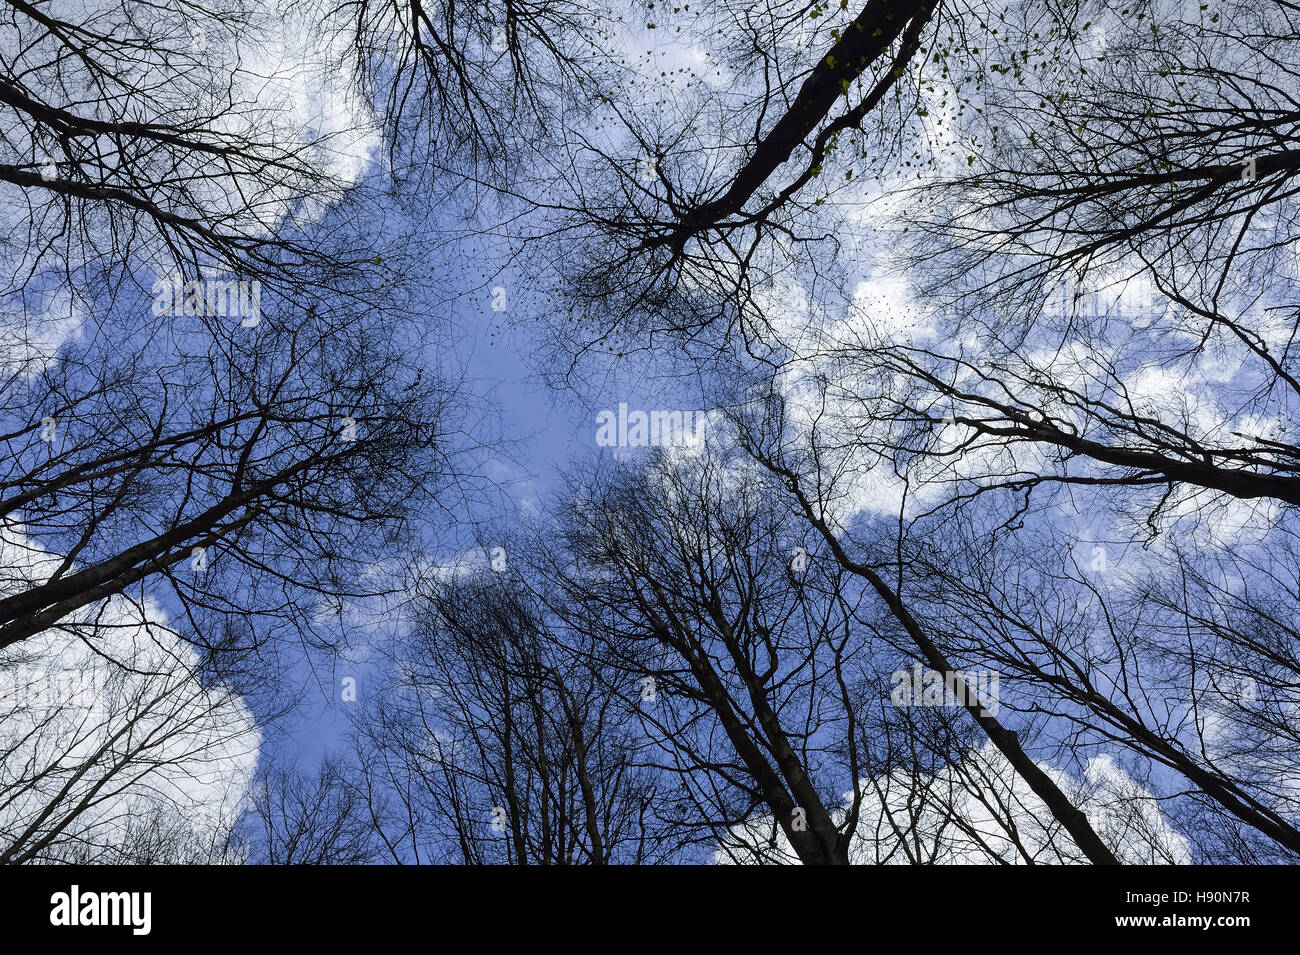 winter trees treetops stockfotos winter trees treetops bilder alamy. Black Bedroom Furniture Sets. Home Design Ideas